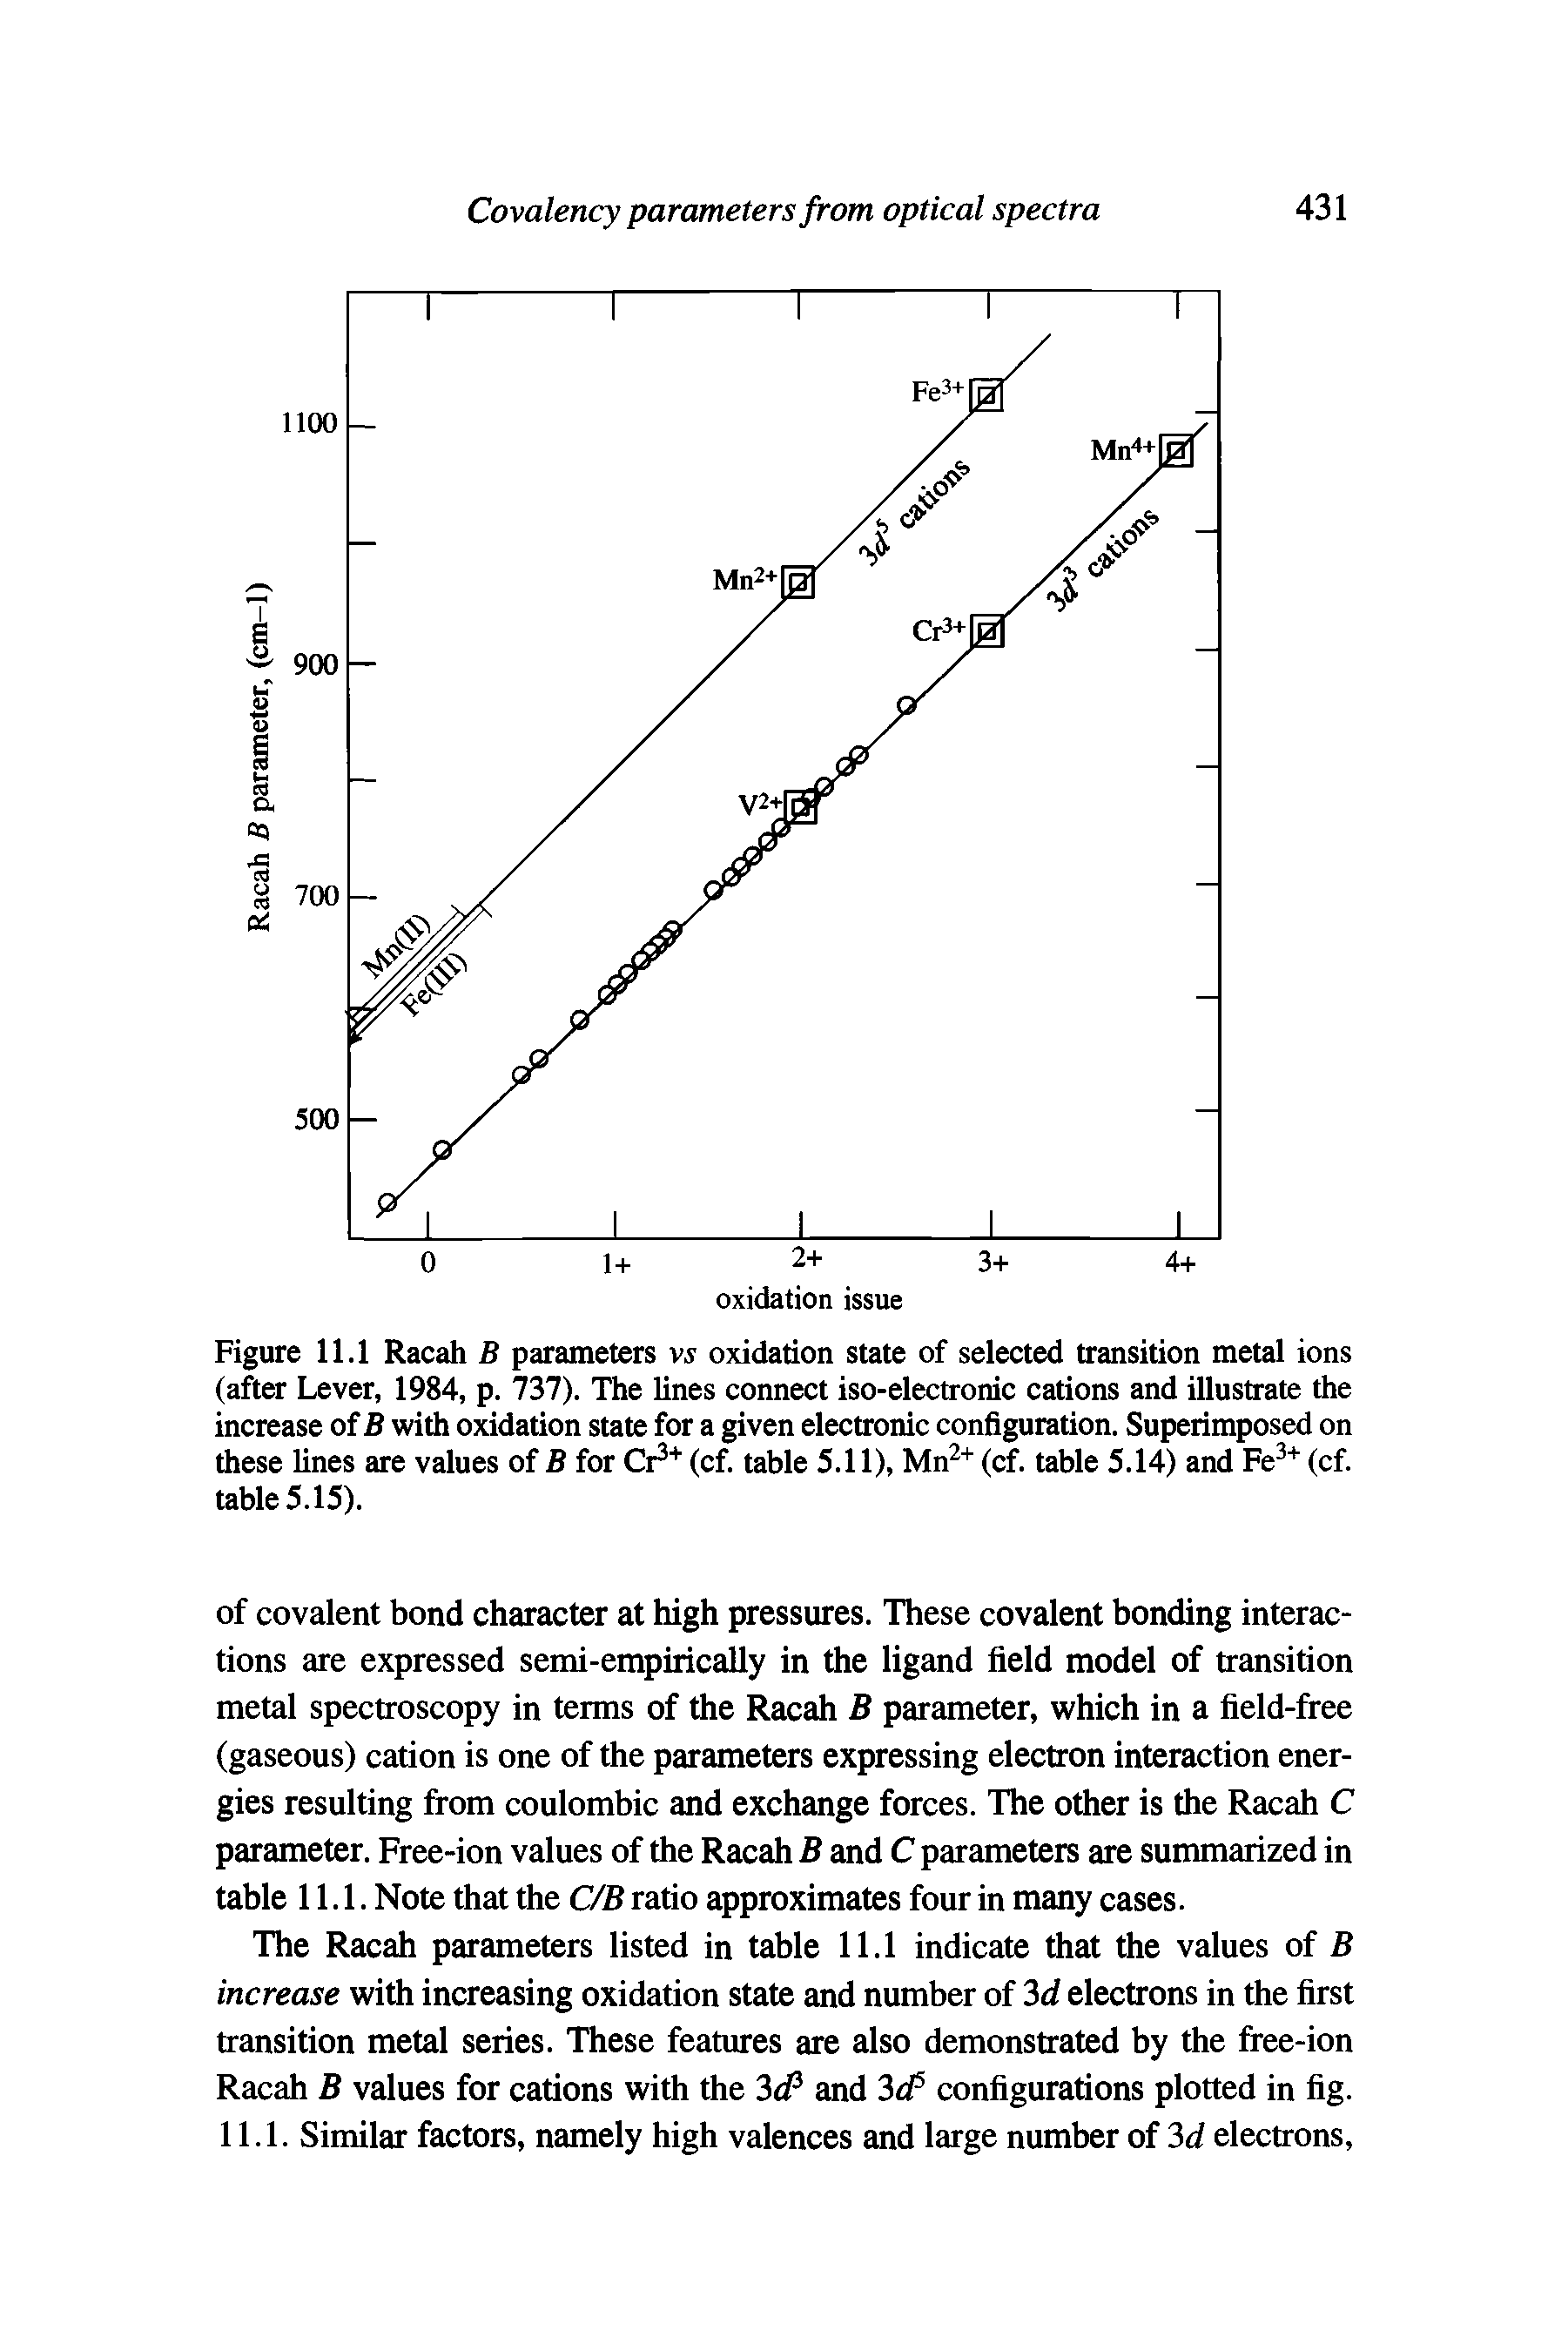 "Figure 11.1 Racah B parameters vs <a href=""/info/oxidation_state"">oxidation state</a> of selected <a href=""/info/transition_metal_ions"">transition metal ions</a> (after Lever, 1984, p. 737). The <a href=""/info/line_connections"">lines connect</a> iso-<a href=""/info/electrons_cations_and"">electronic cations</a> and illustrate the increase of B <a href=""/info/fe_mn_al_oxide_with"">with oxidation</a> state for a given <a href=""/info/electronic_configurations"">electronic configuration</a>. Superimposed on these lines are values of B for Cr3+ (cf. table 5.11), Mn2+ (cf. table 5.14) and Fe3+ (cf. table 5.15)."